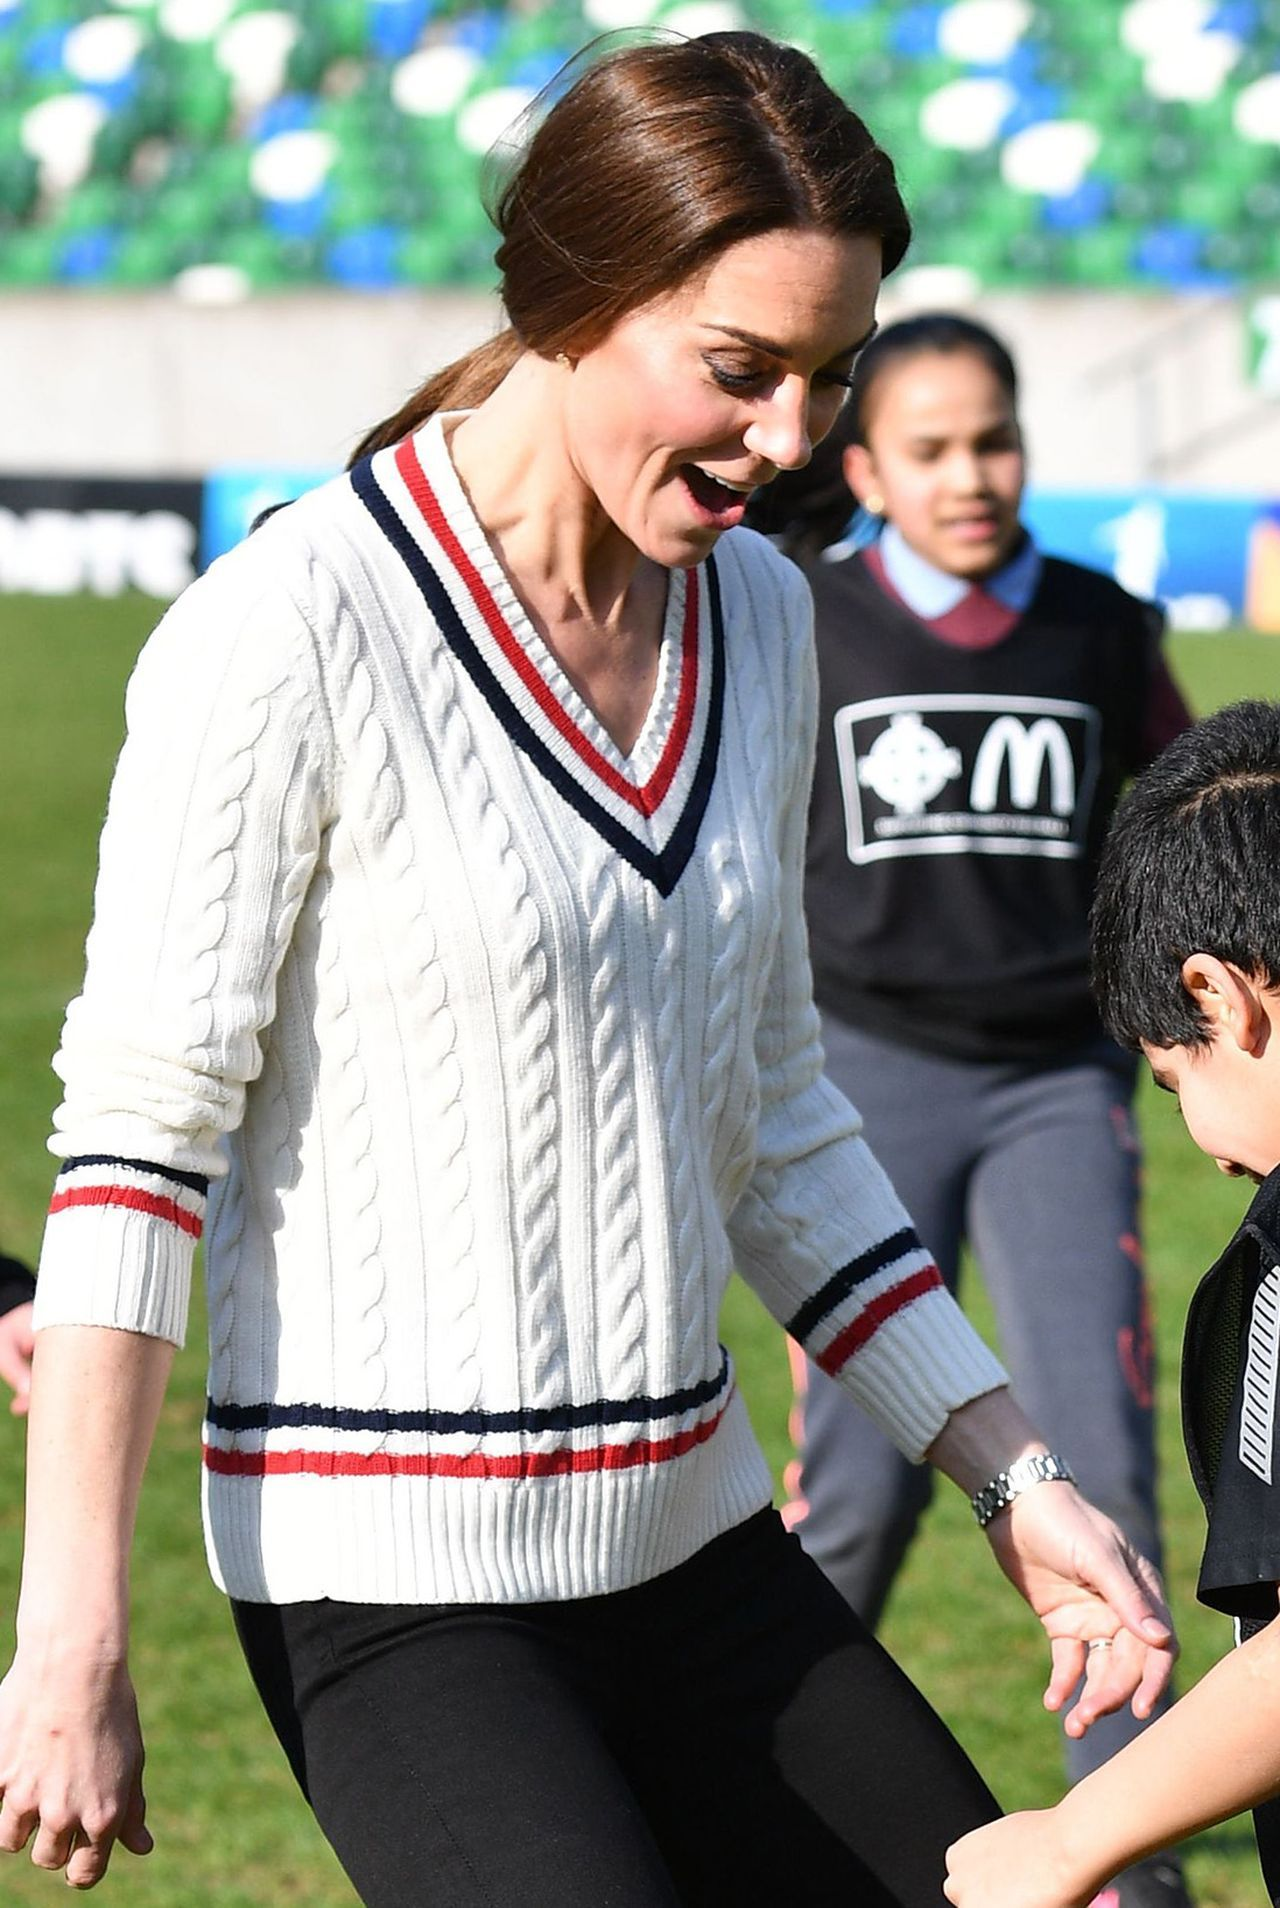 The Duke and Duchess of Cambridge visit the Irish Football Association